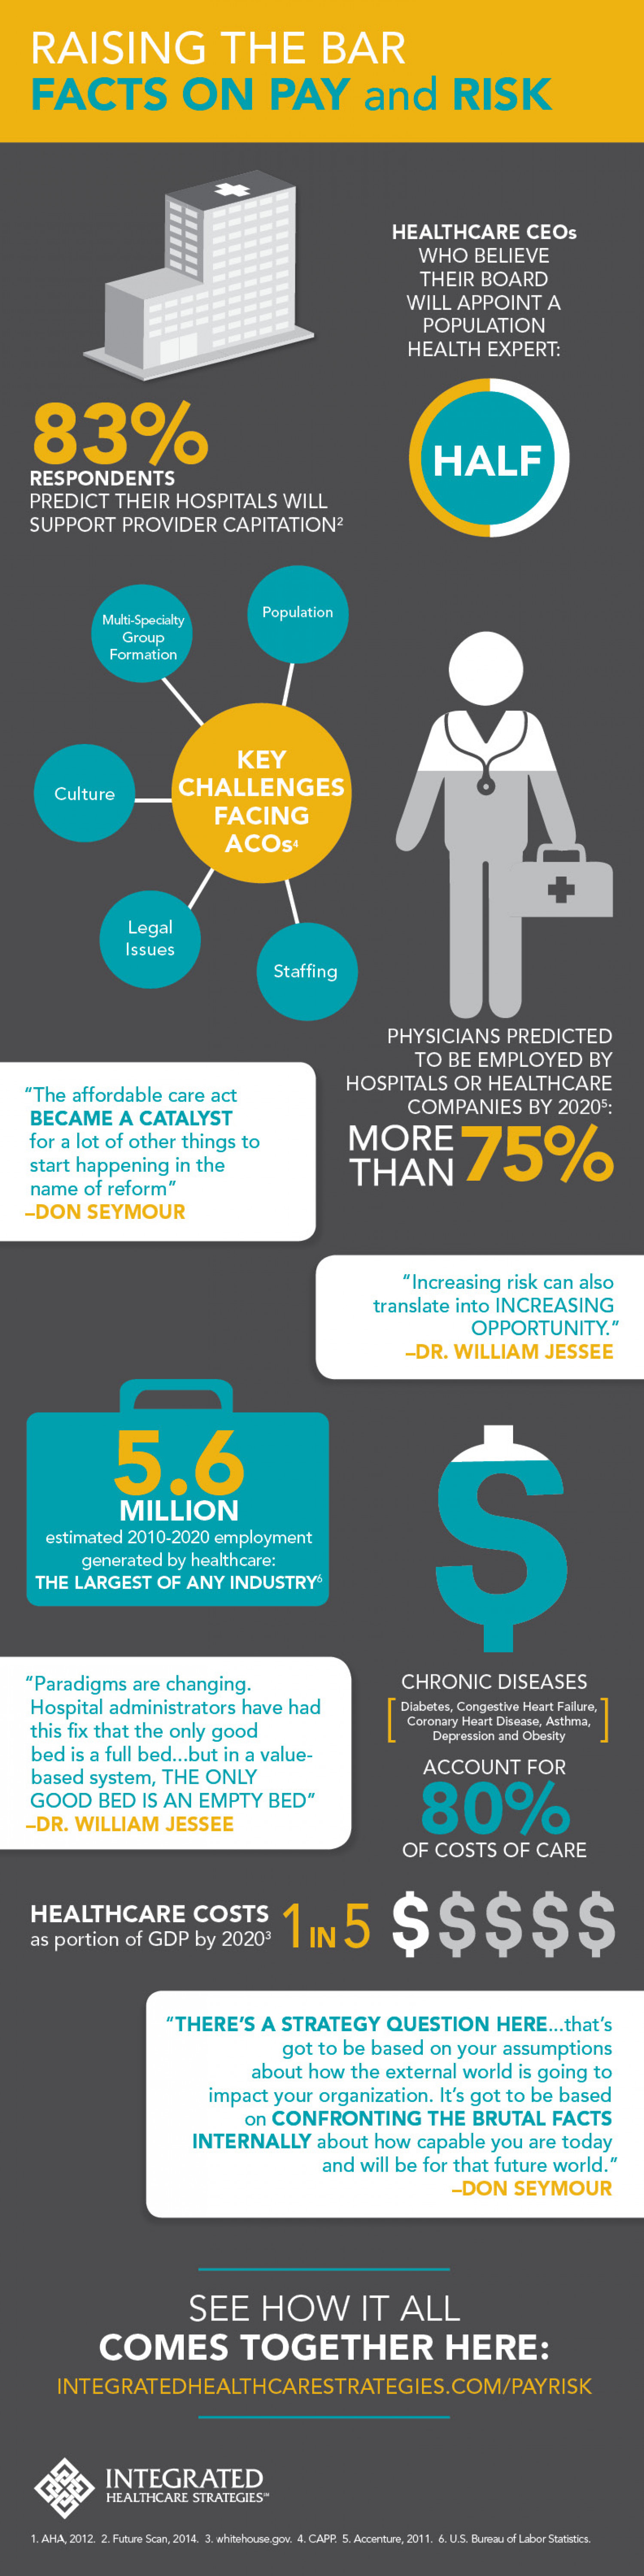 Raising the Bar: Facts on Healthcare Pay and Risk  Infographic